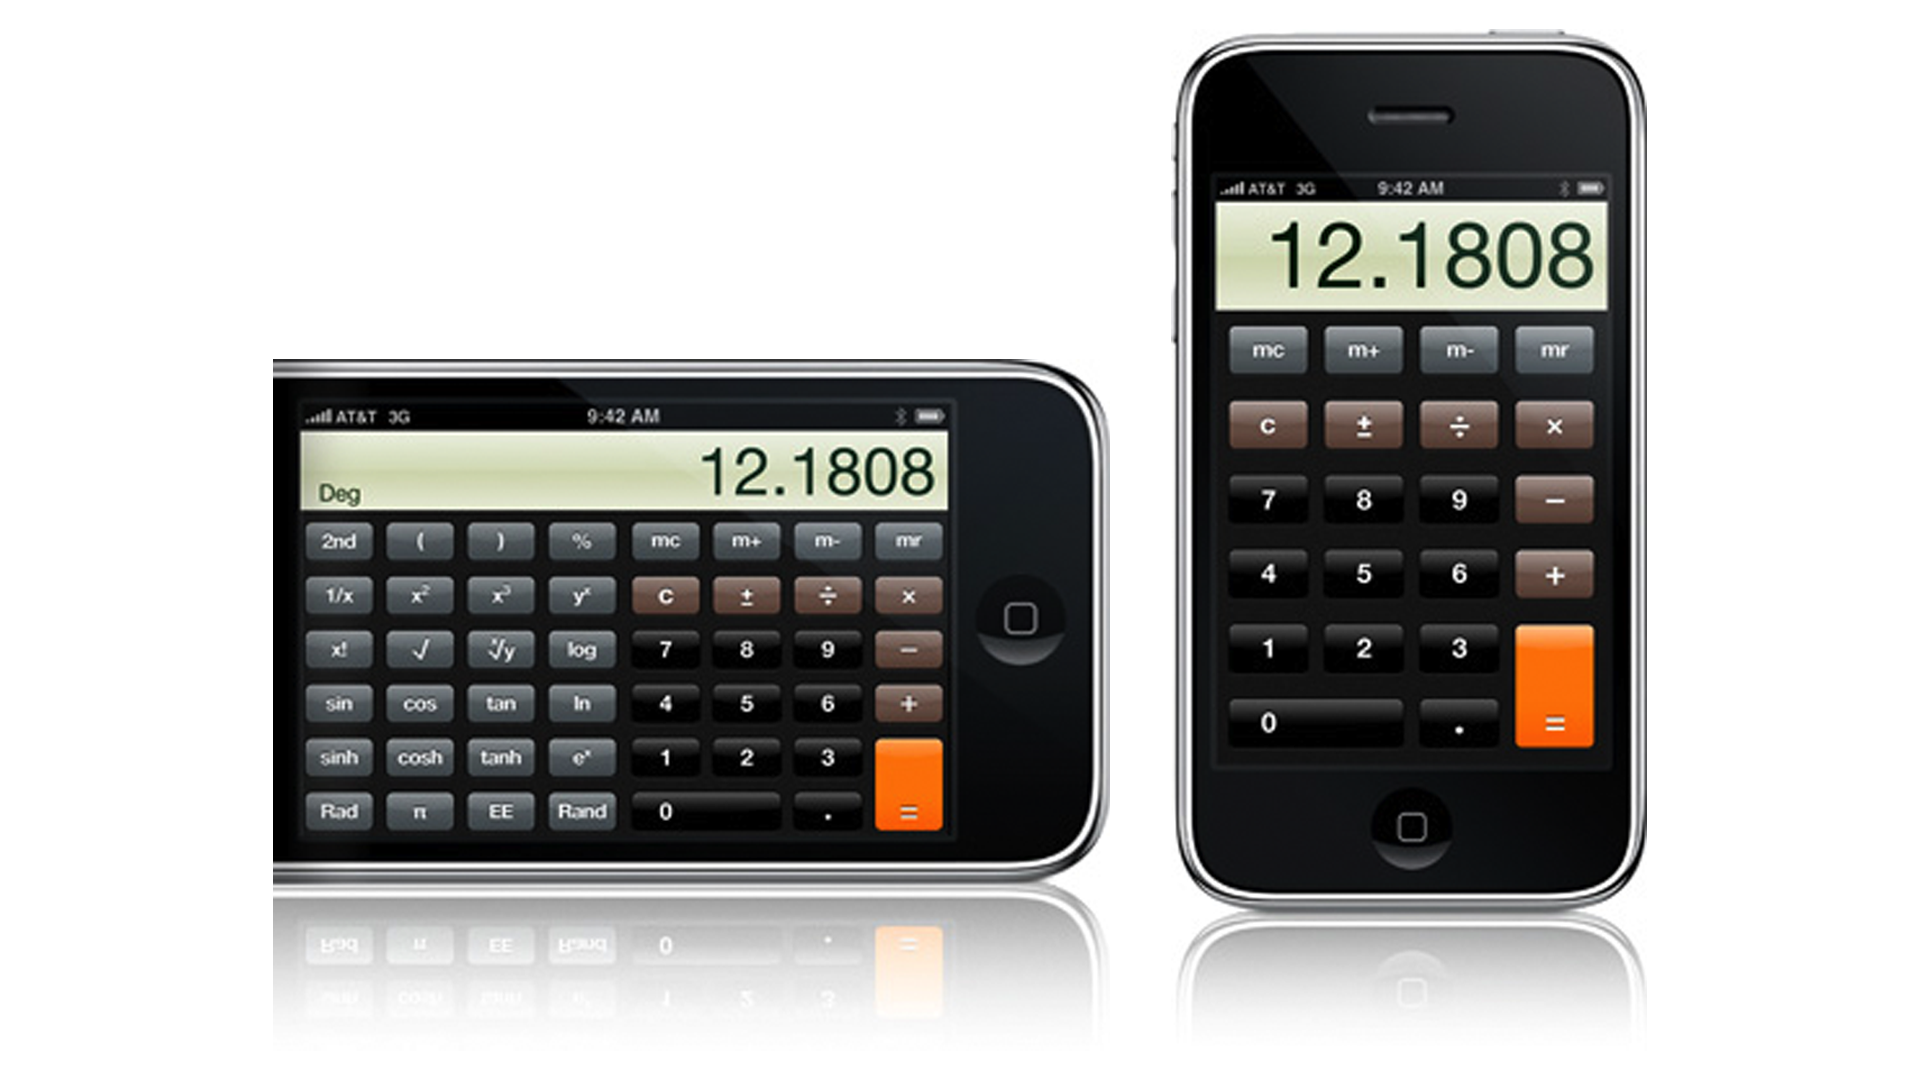 Calculator (2.0) on the iPhone.